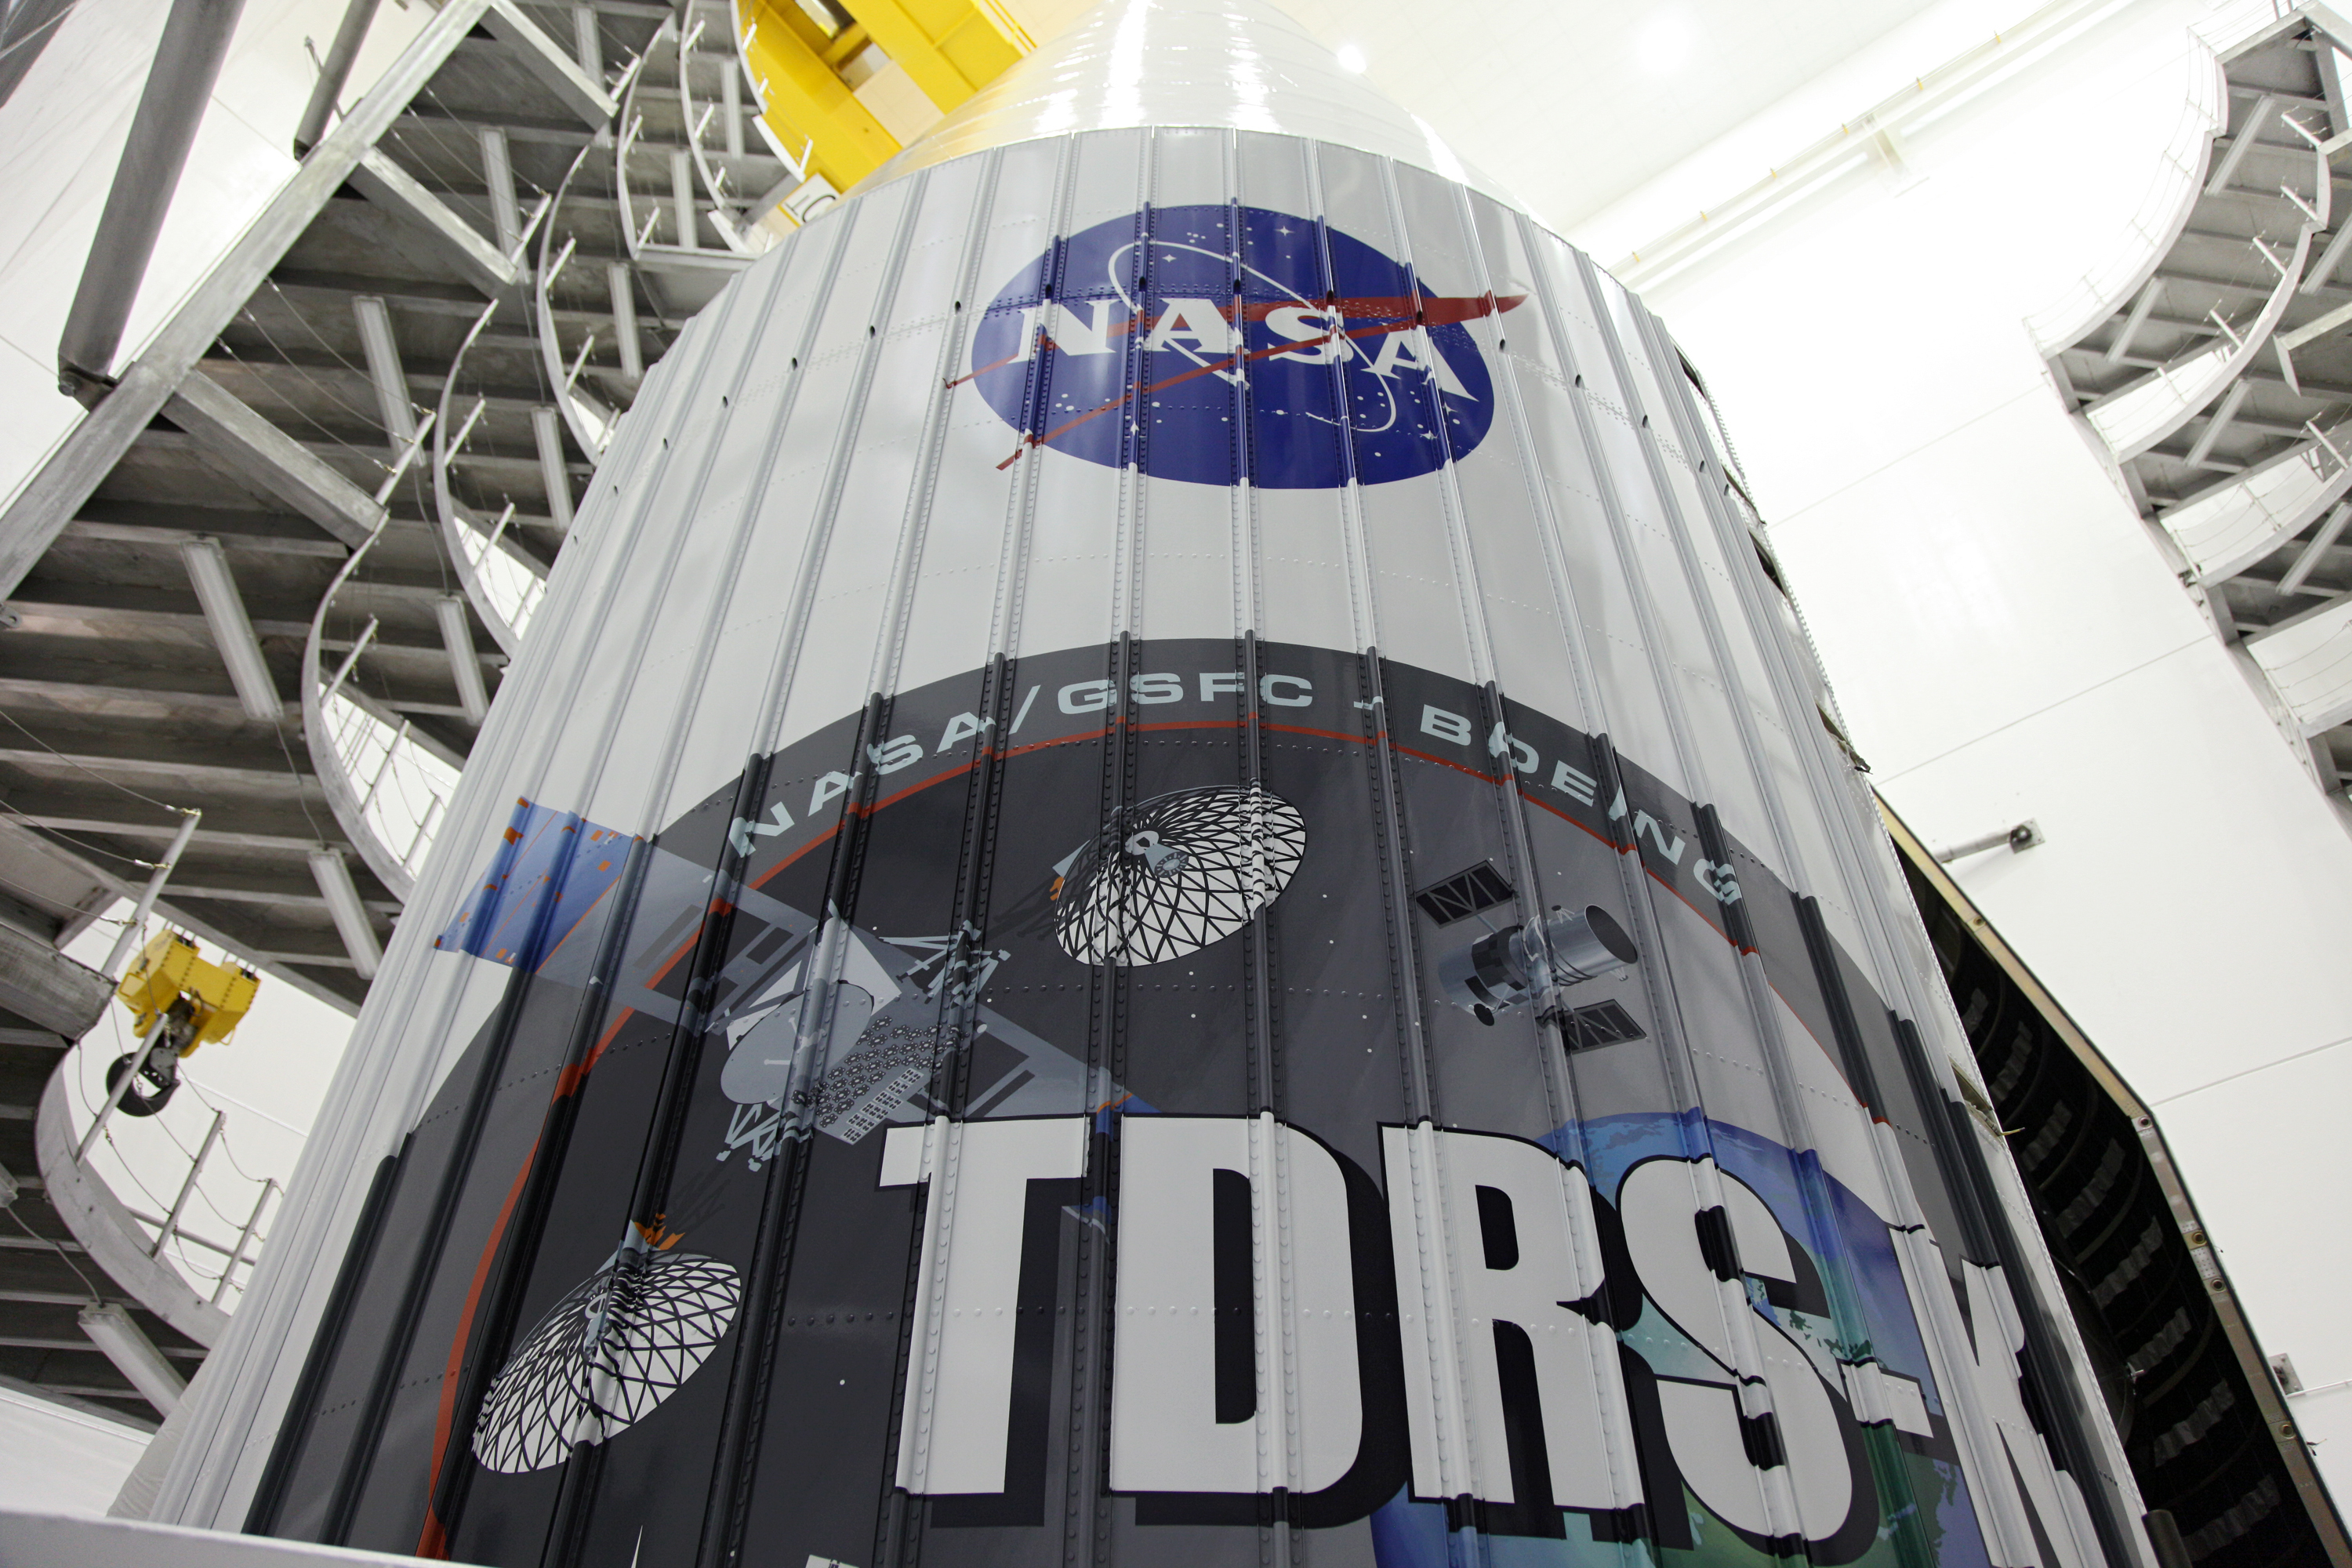 Logo on the TDRS-K Spacecraft